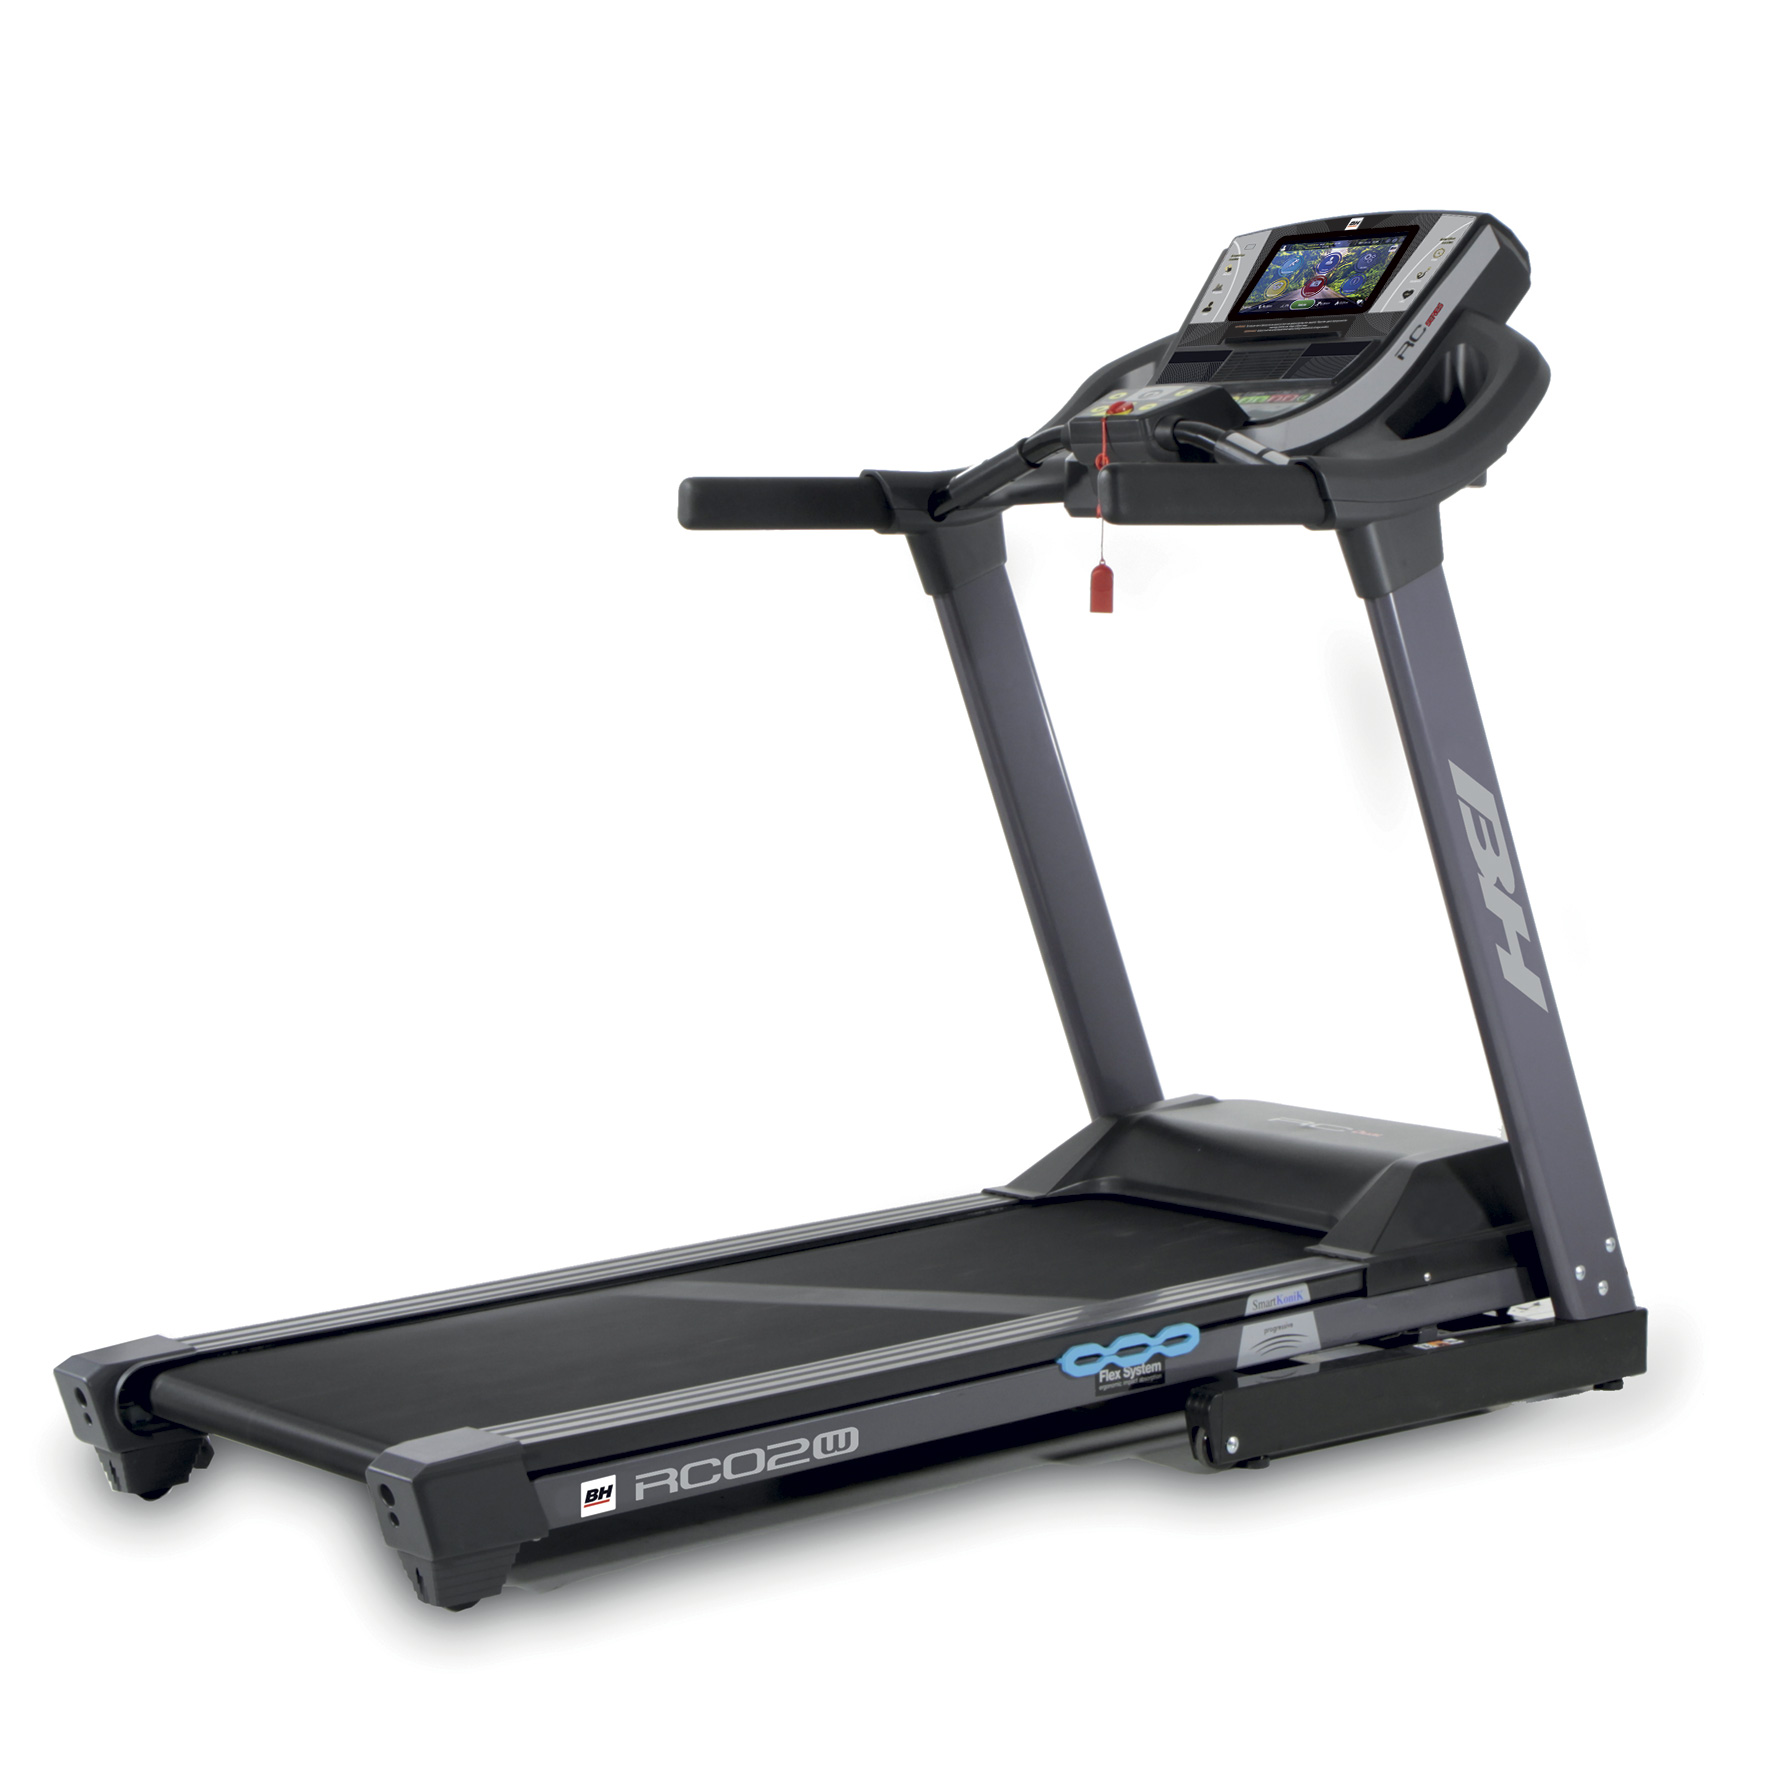 Tapis Roulant Bh Fitness RC02W TFT